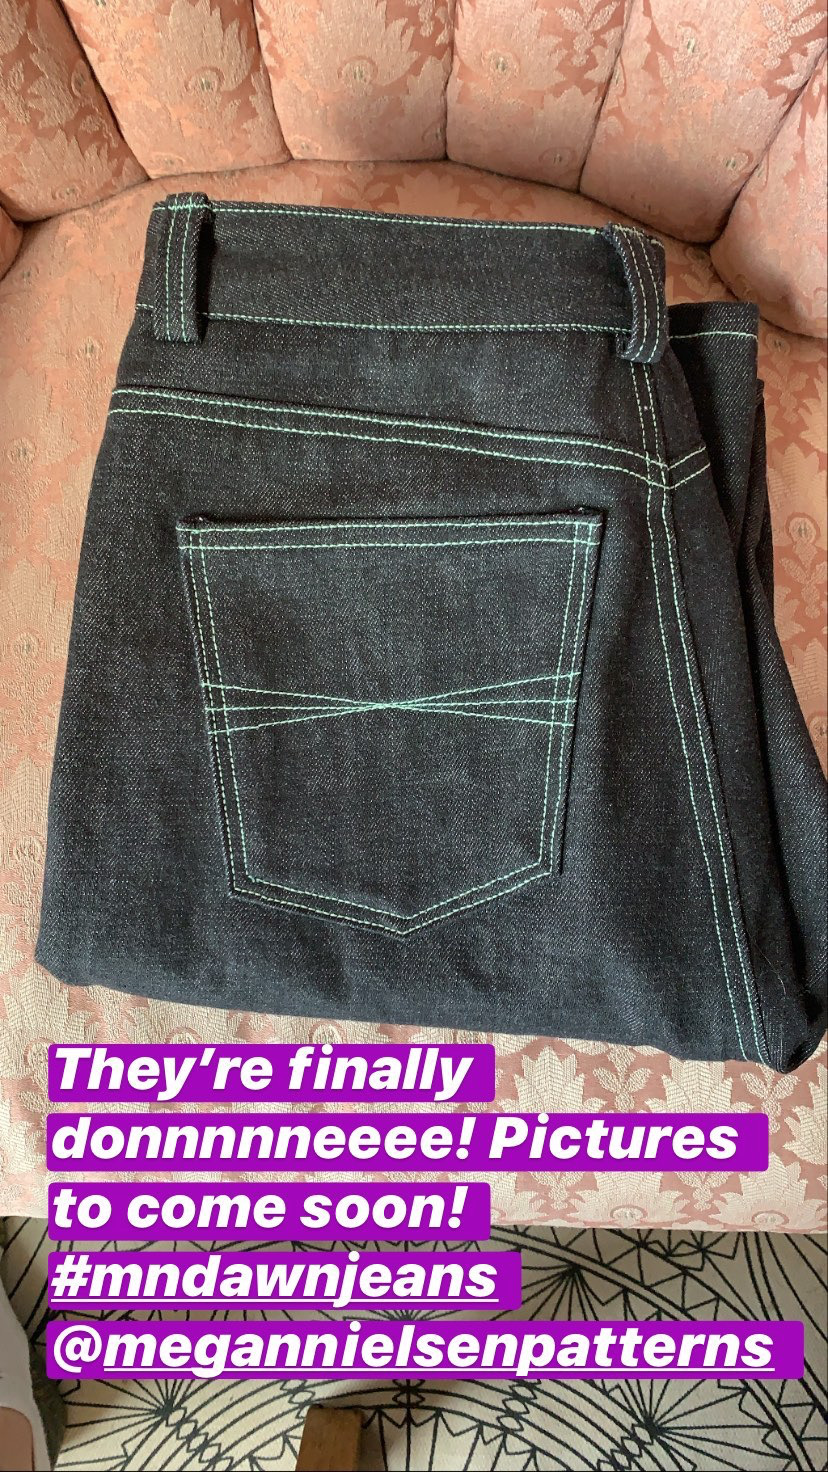 Insta post of MN dawn jeans